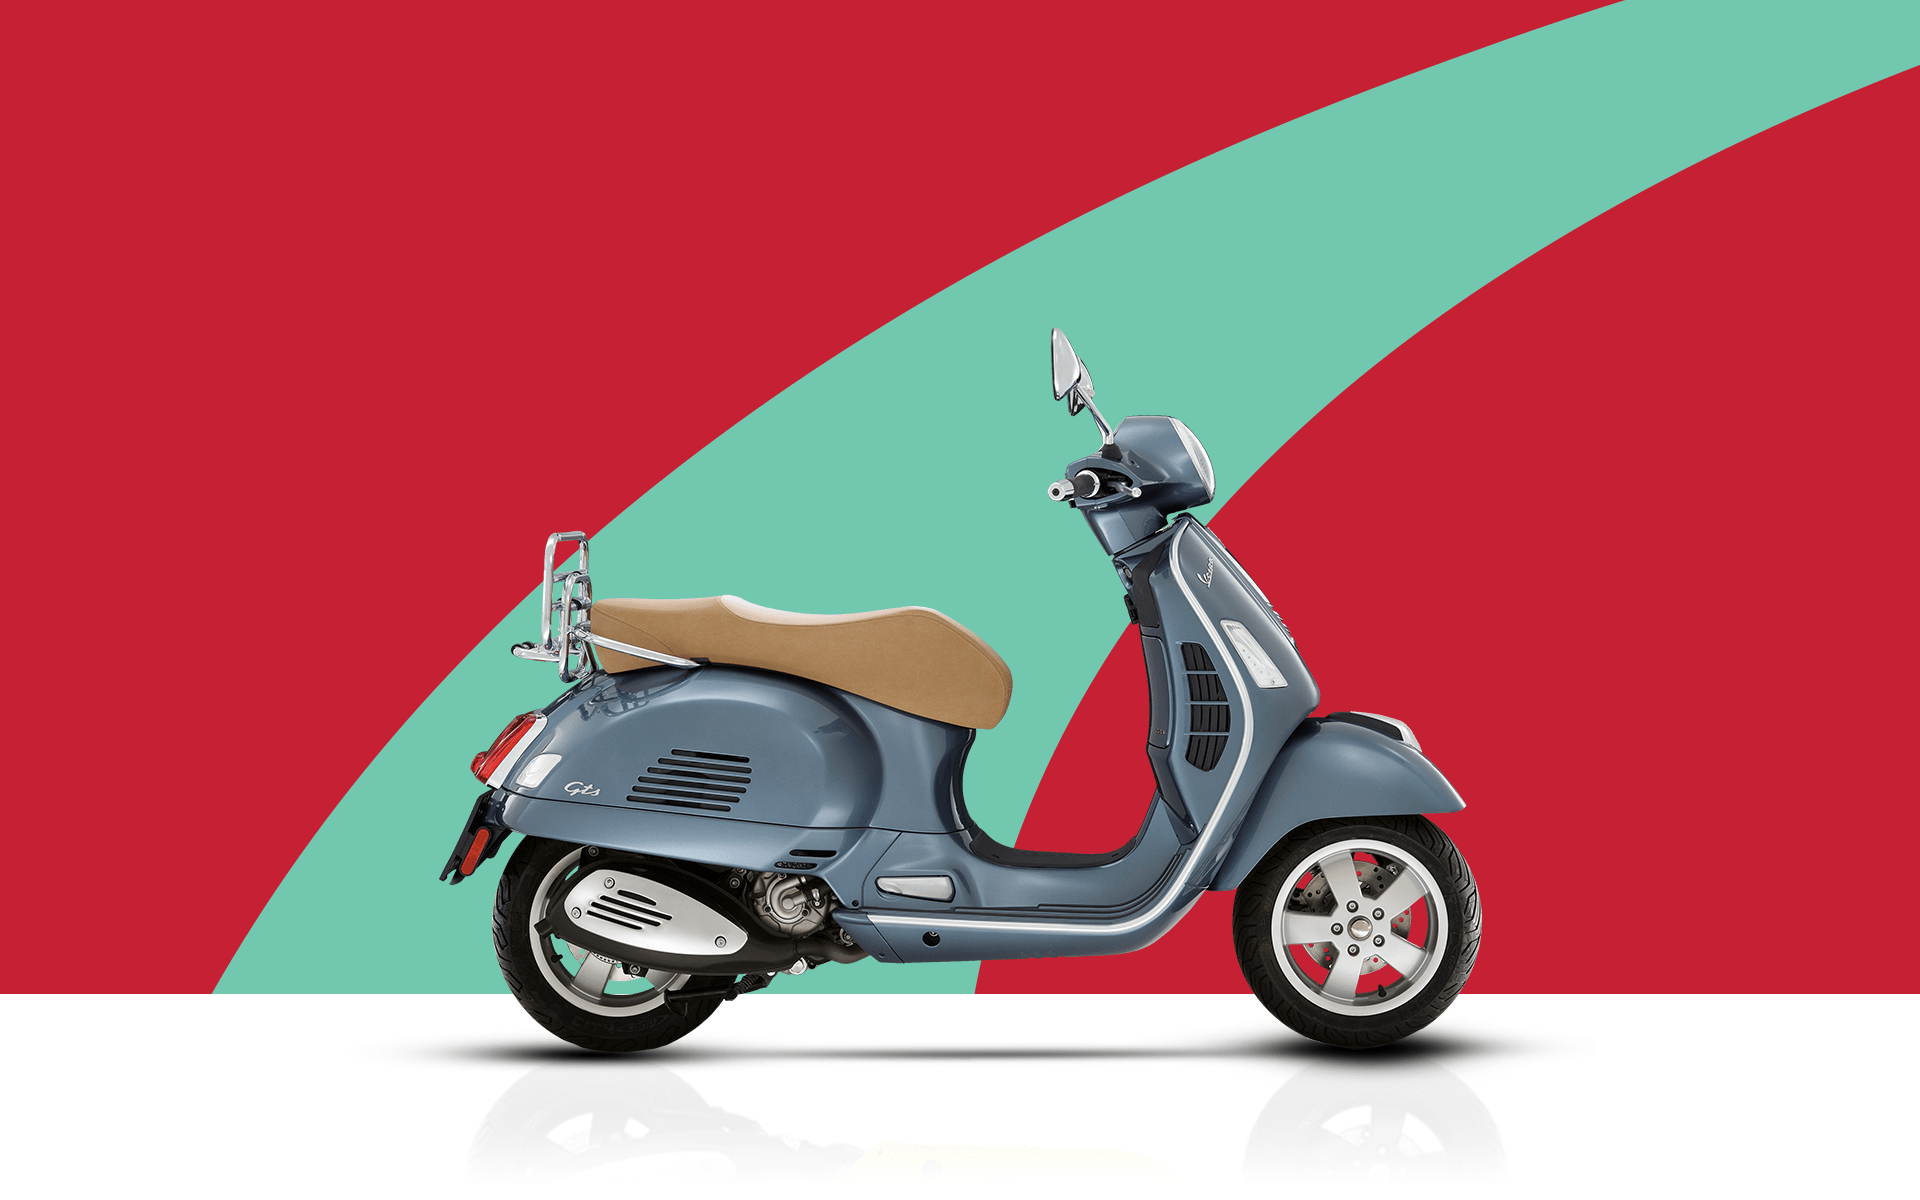 Vespa goes (RED) to support battle against Aids